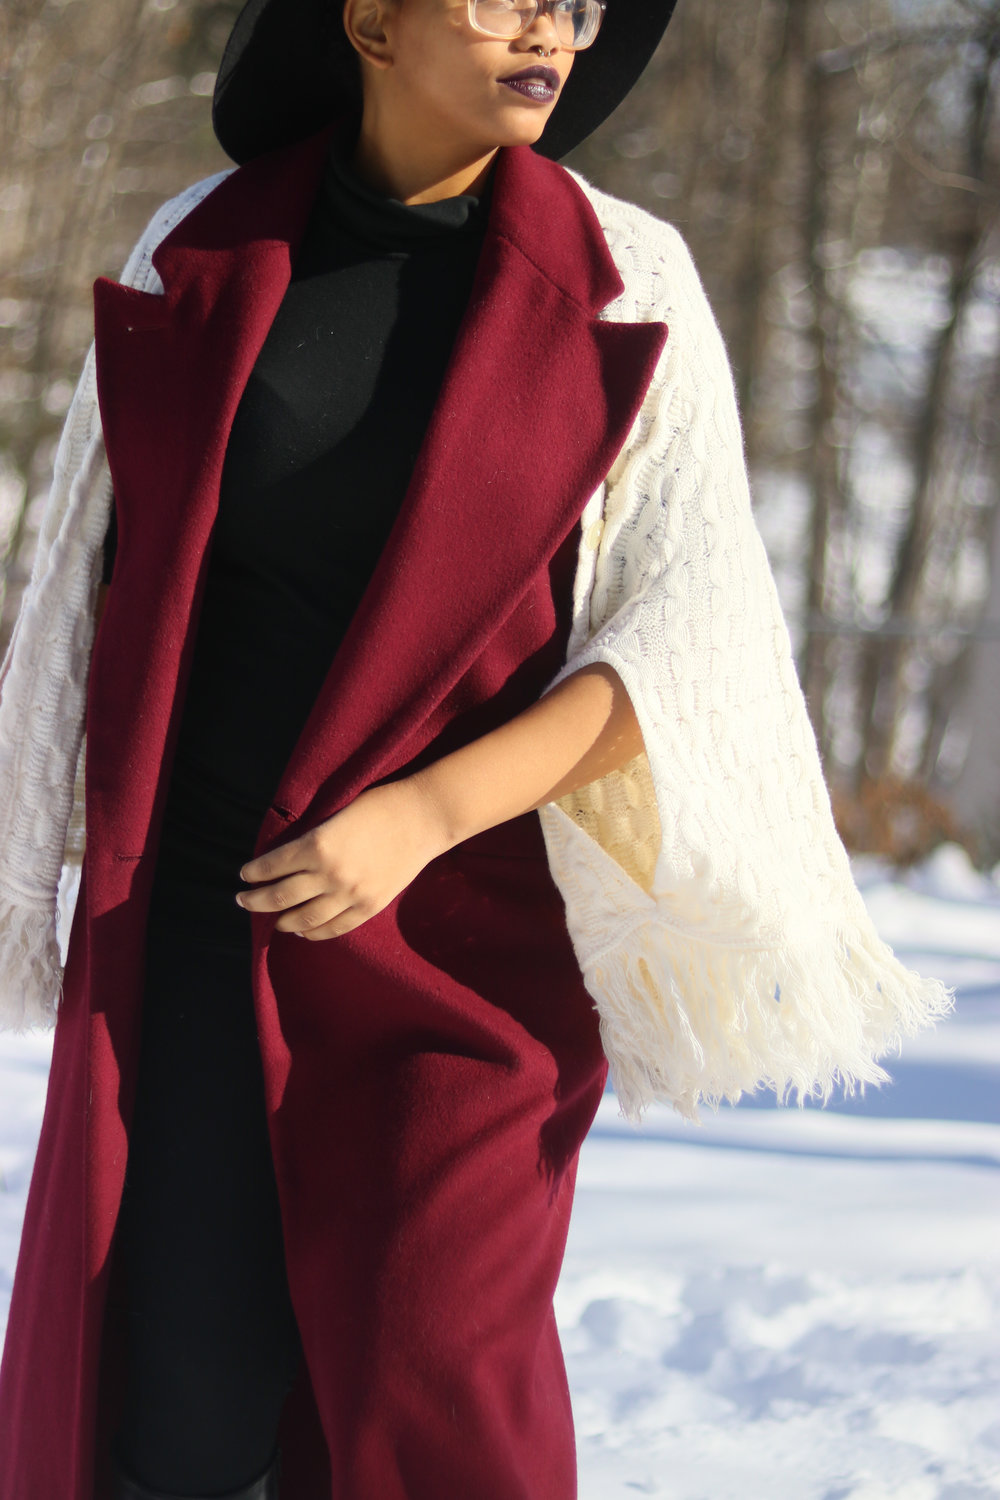 Fort Lily SNOW - 4 Layered Styles-27.jpg